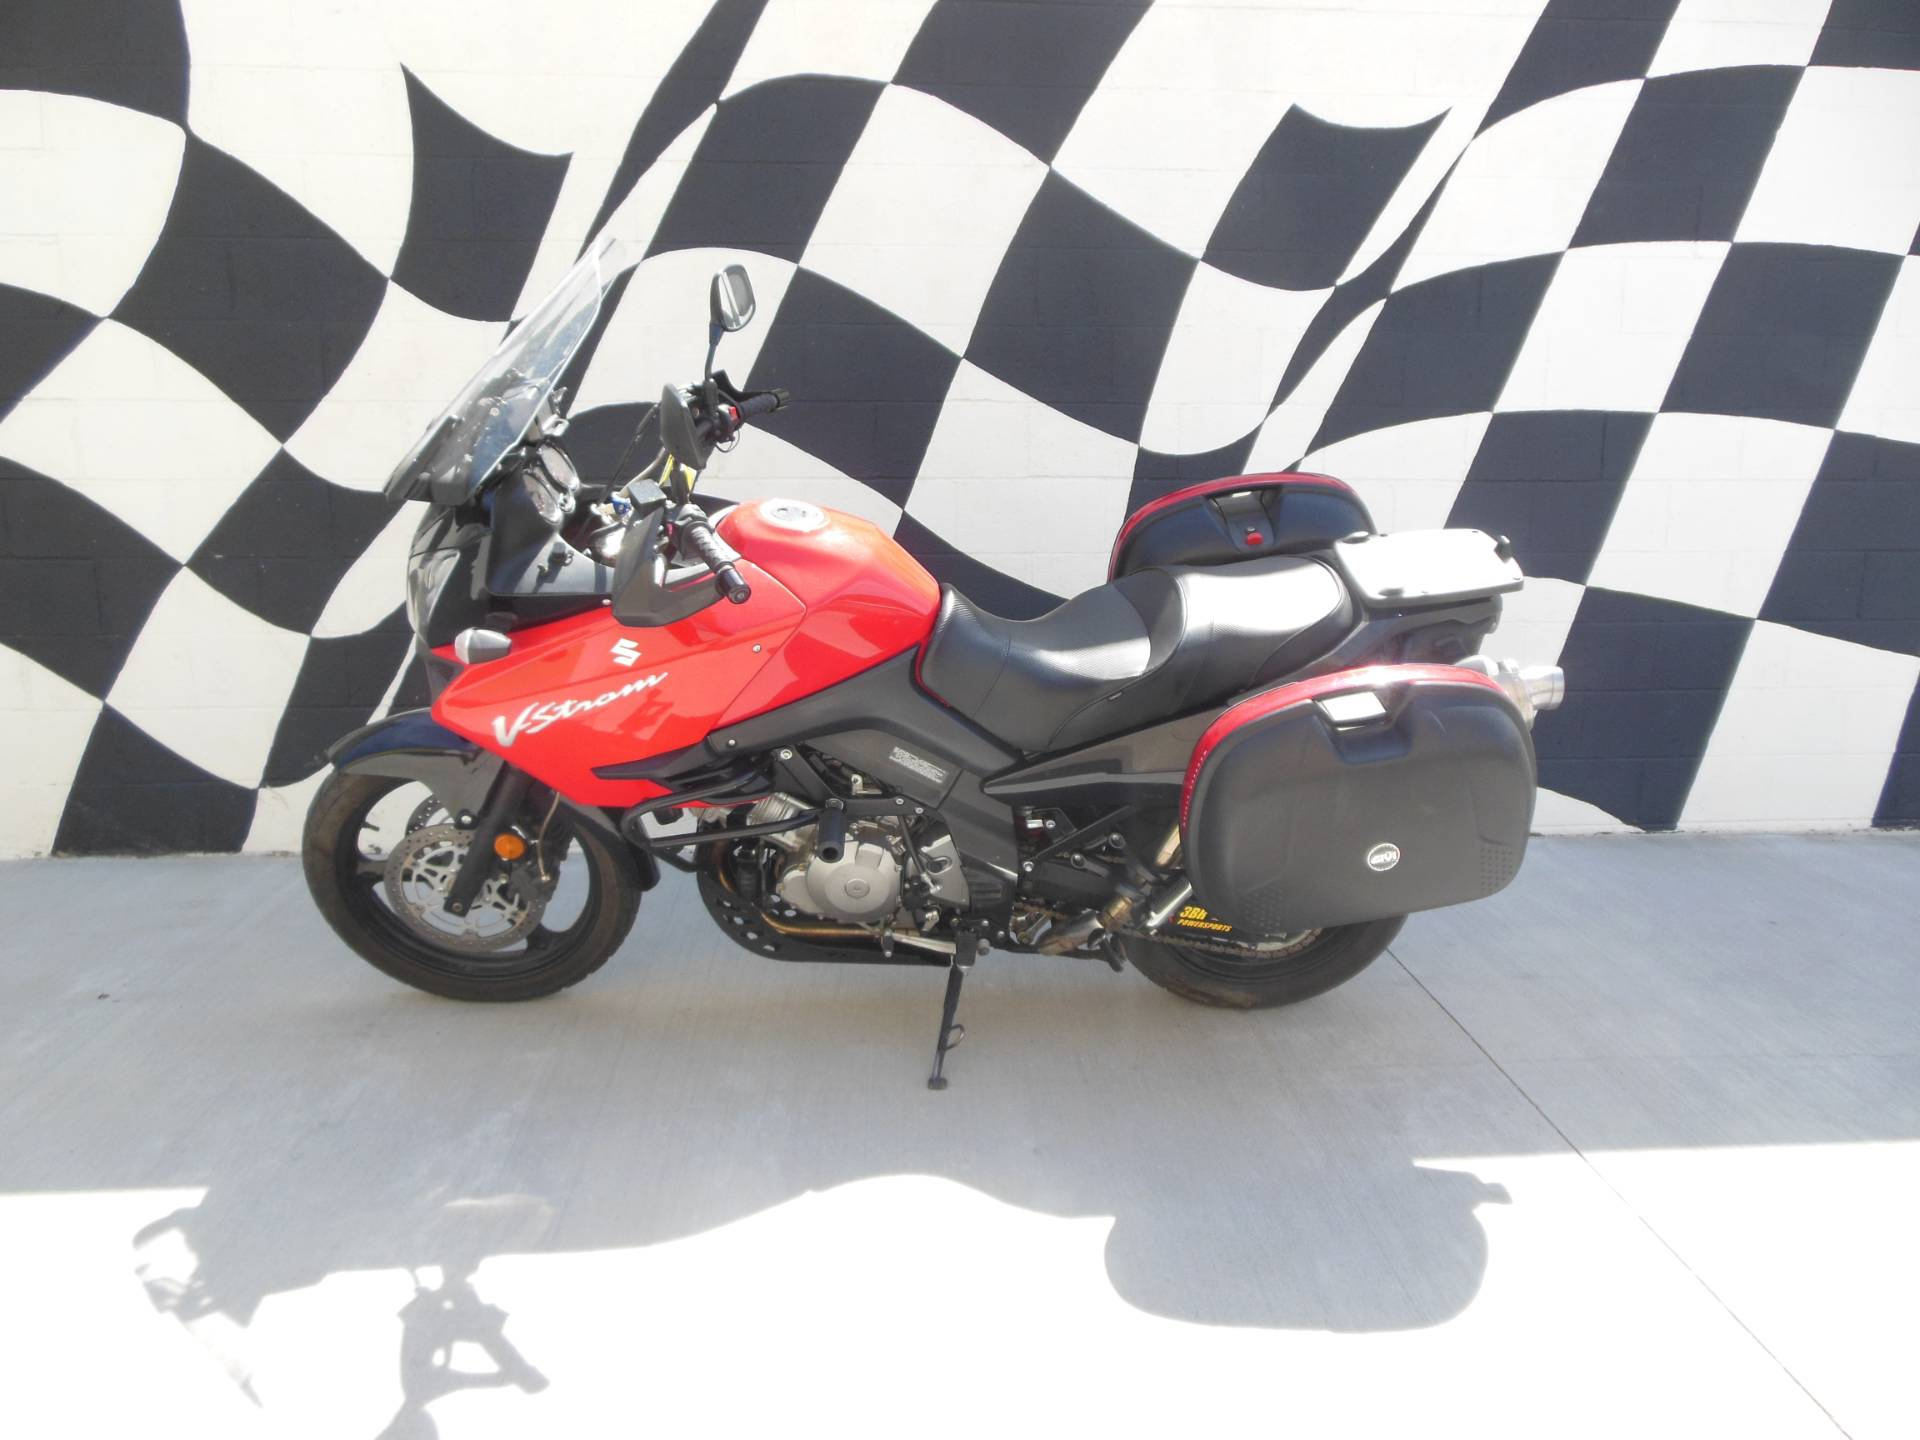 2012 Suzuki V-Strom 1000 for sale 1027